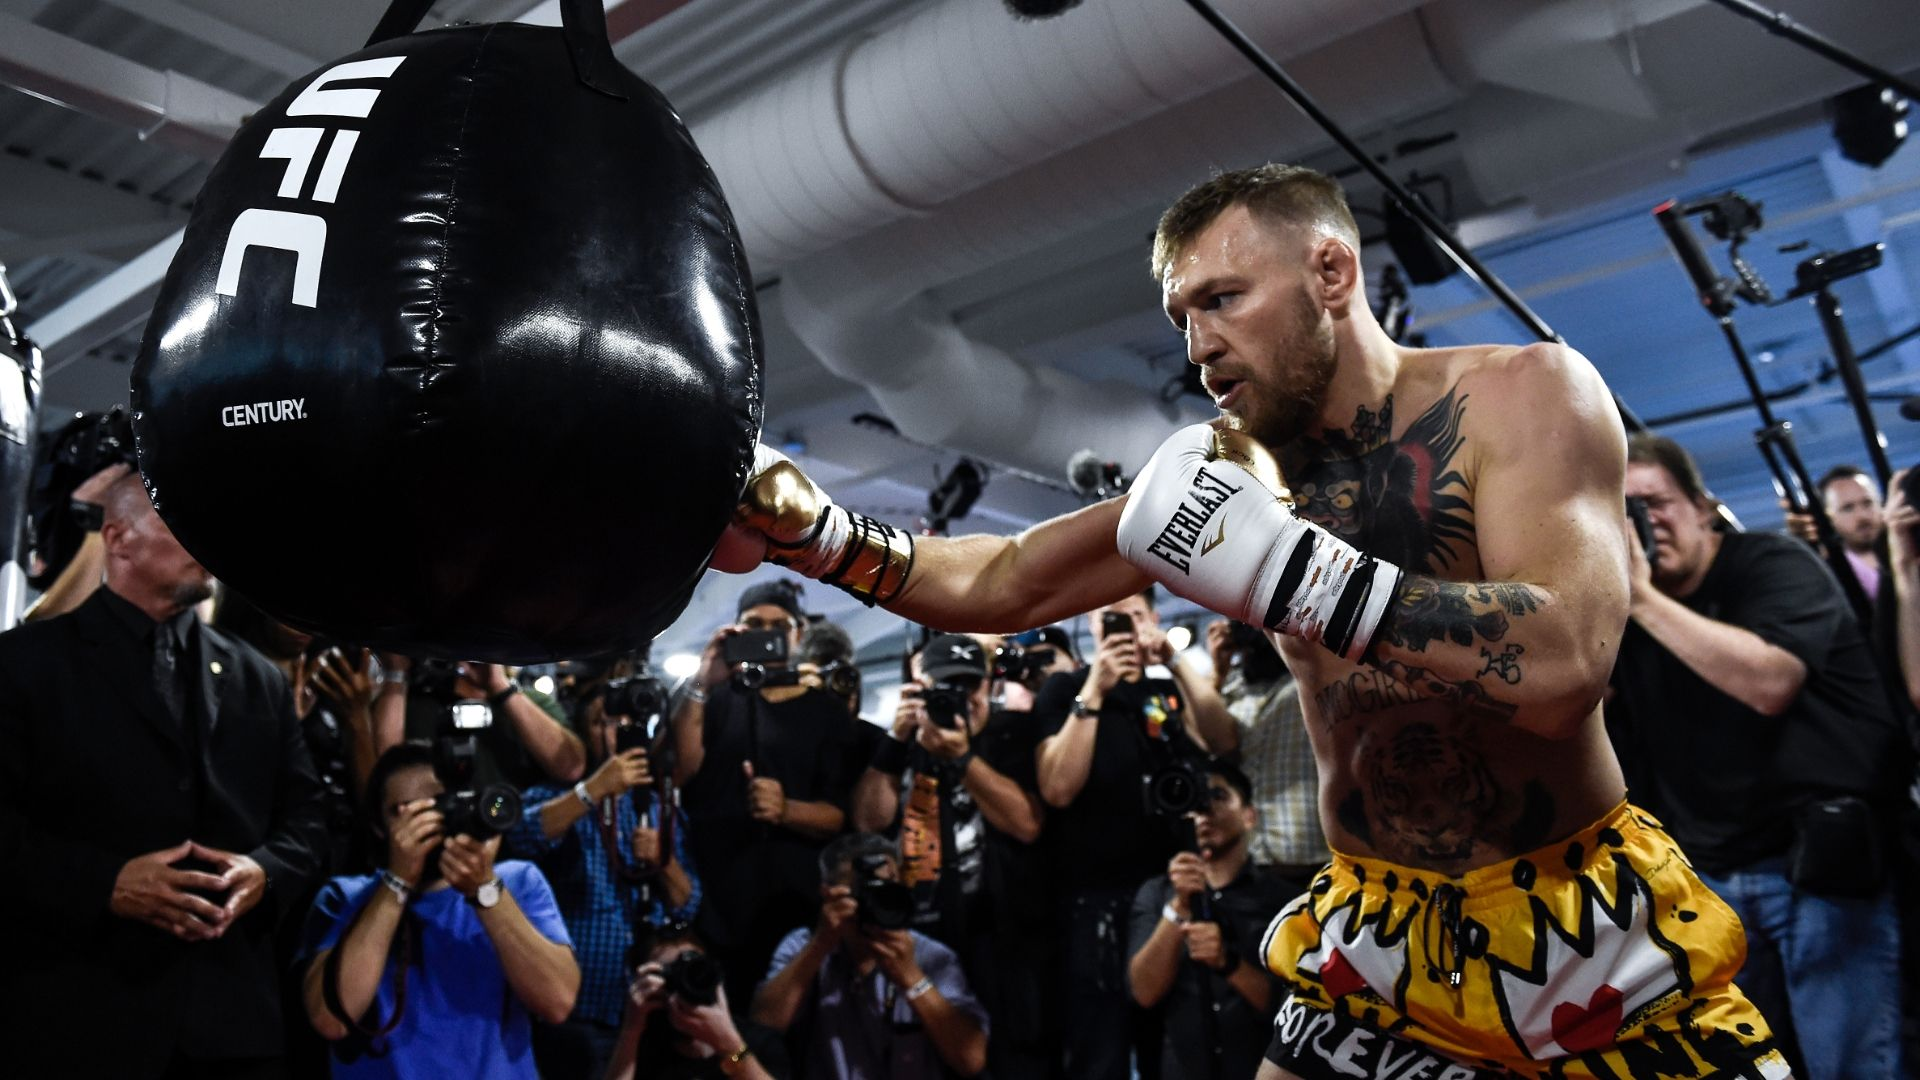 McGregor ready to shut down doubters